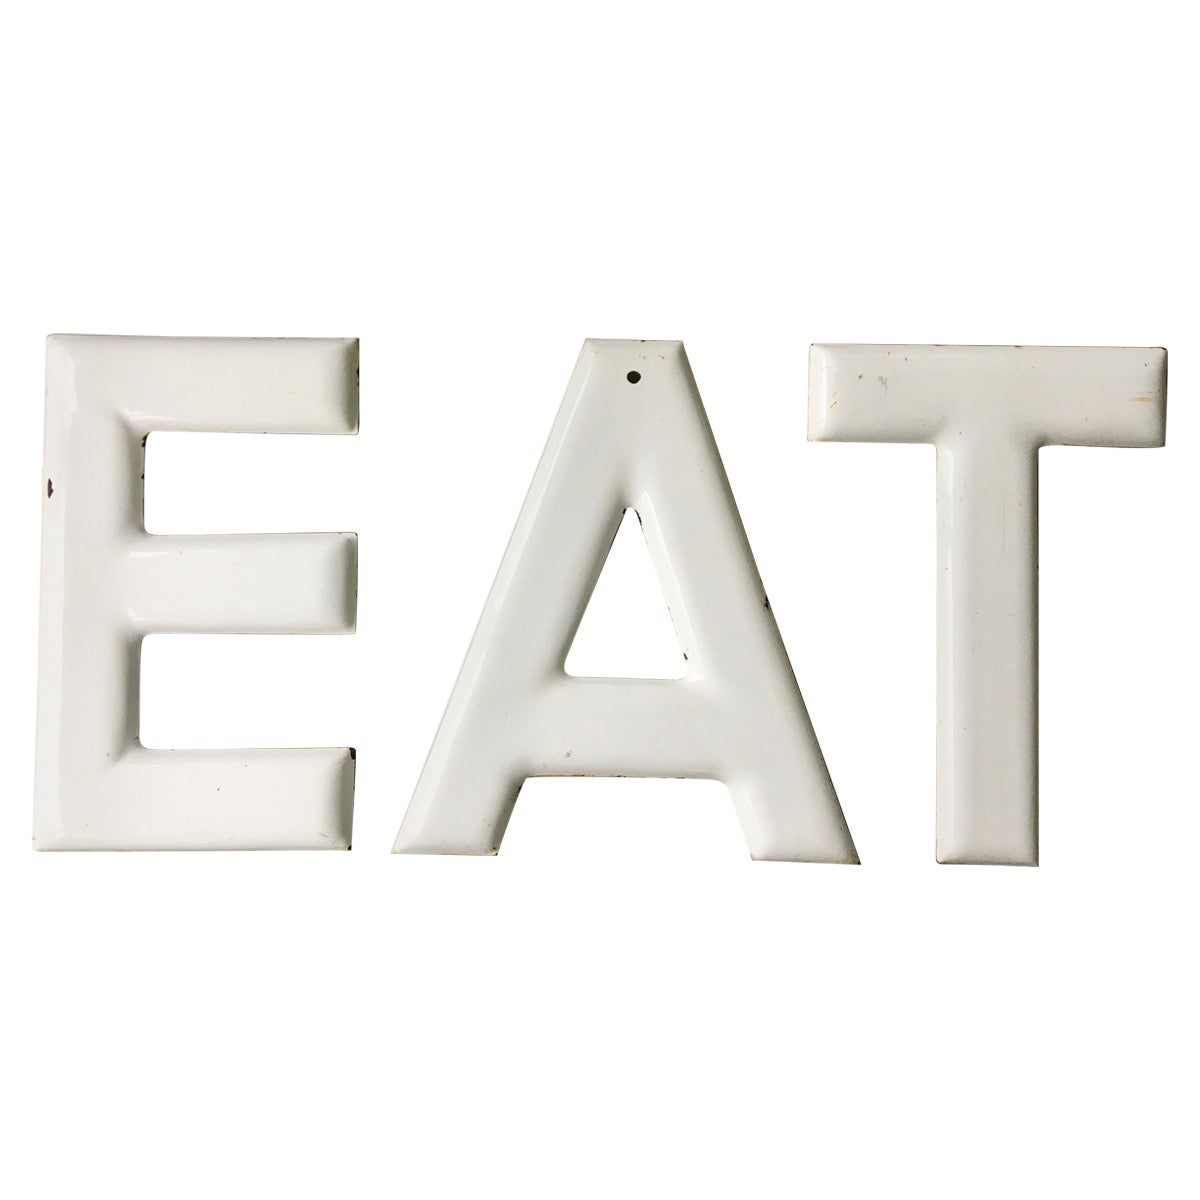 Eat or Tea Large Scale 1950s American Porcelain Enameled Steel Letters Sign